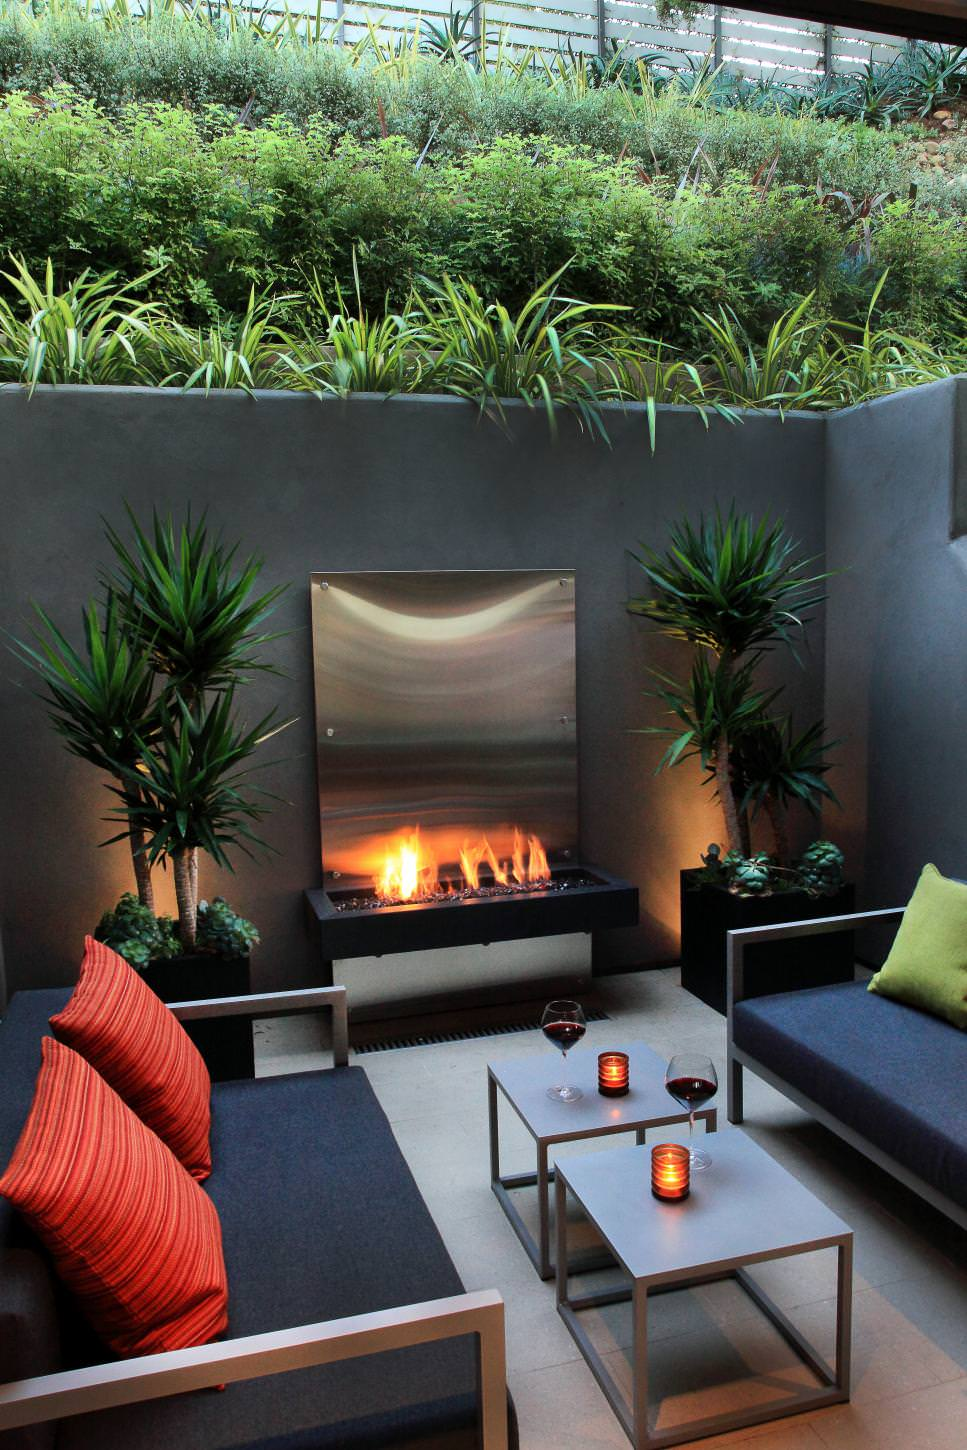 23 concrete wall designs decor ideas design trends for Small outdoor decorating ideas